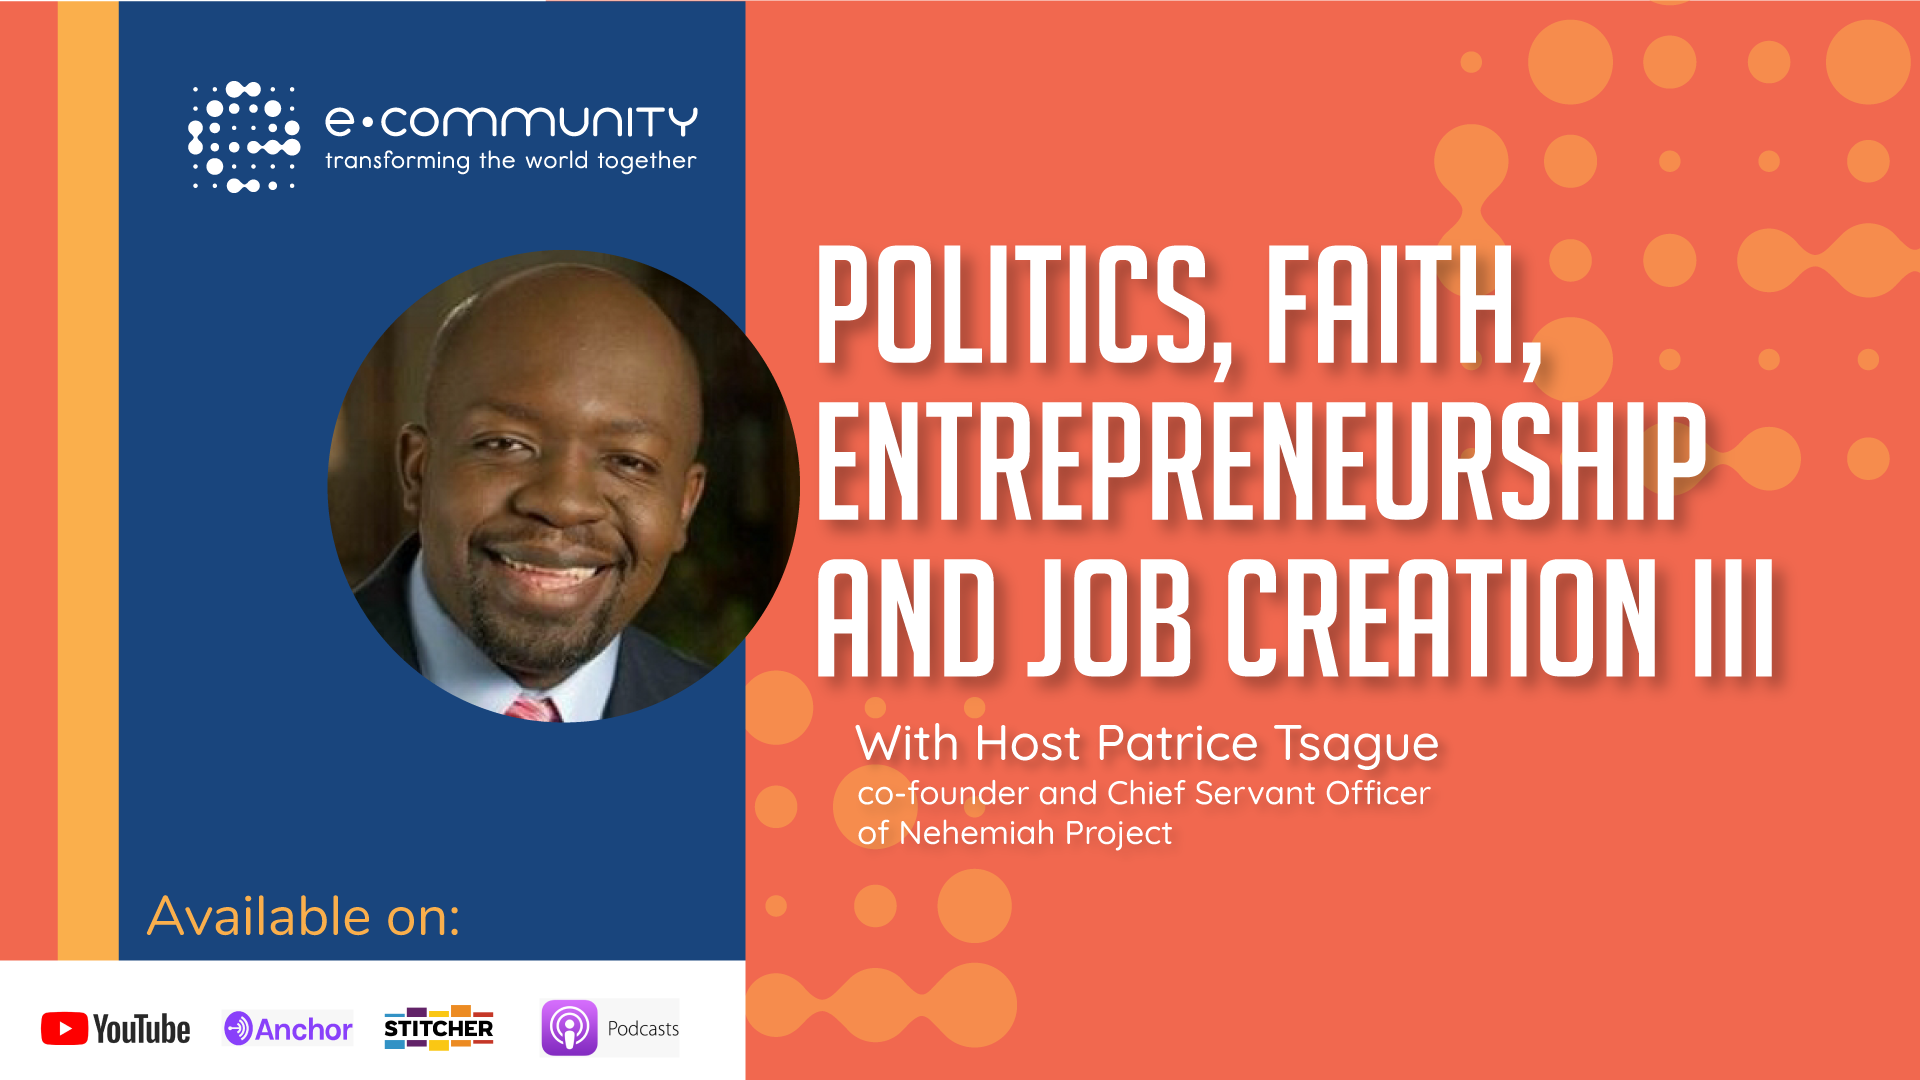 Politics, Faith, Entrepreneurship and Job creation III